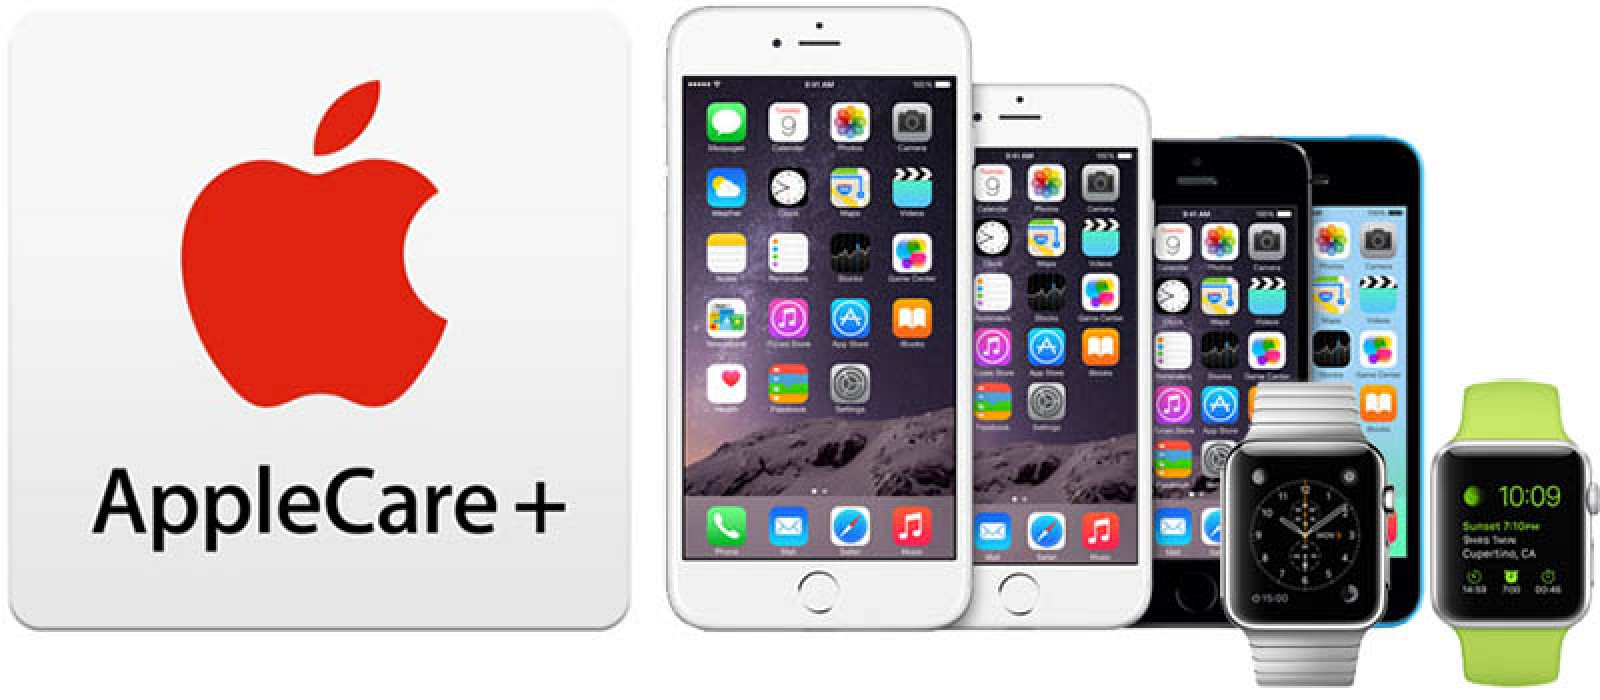 AppleCare+ for iPhone, iPad, iPod and Apple Watch Now ...